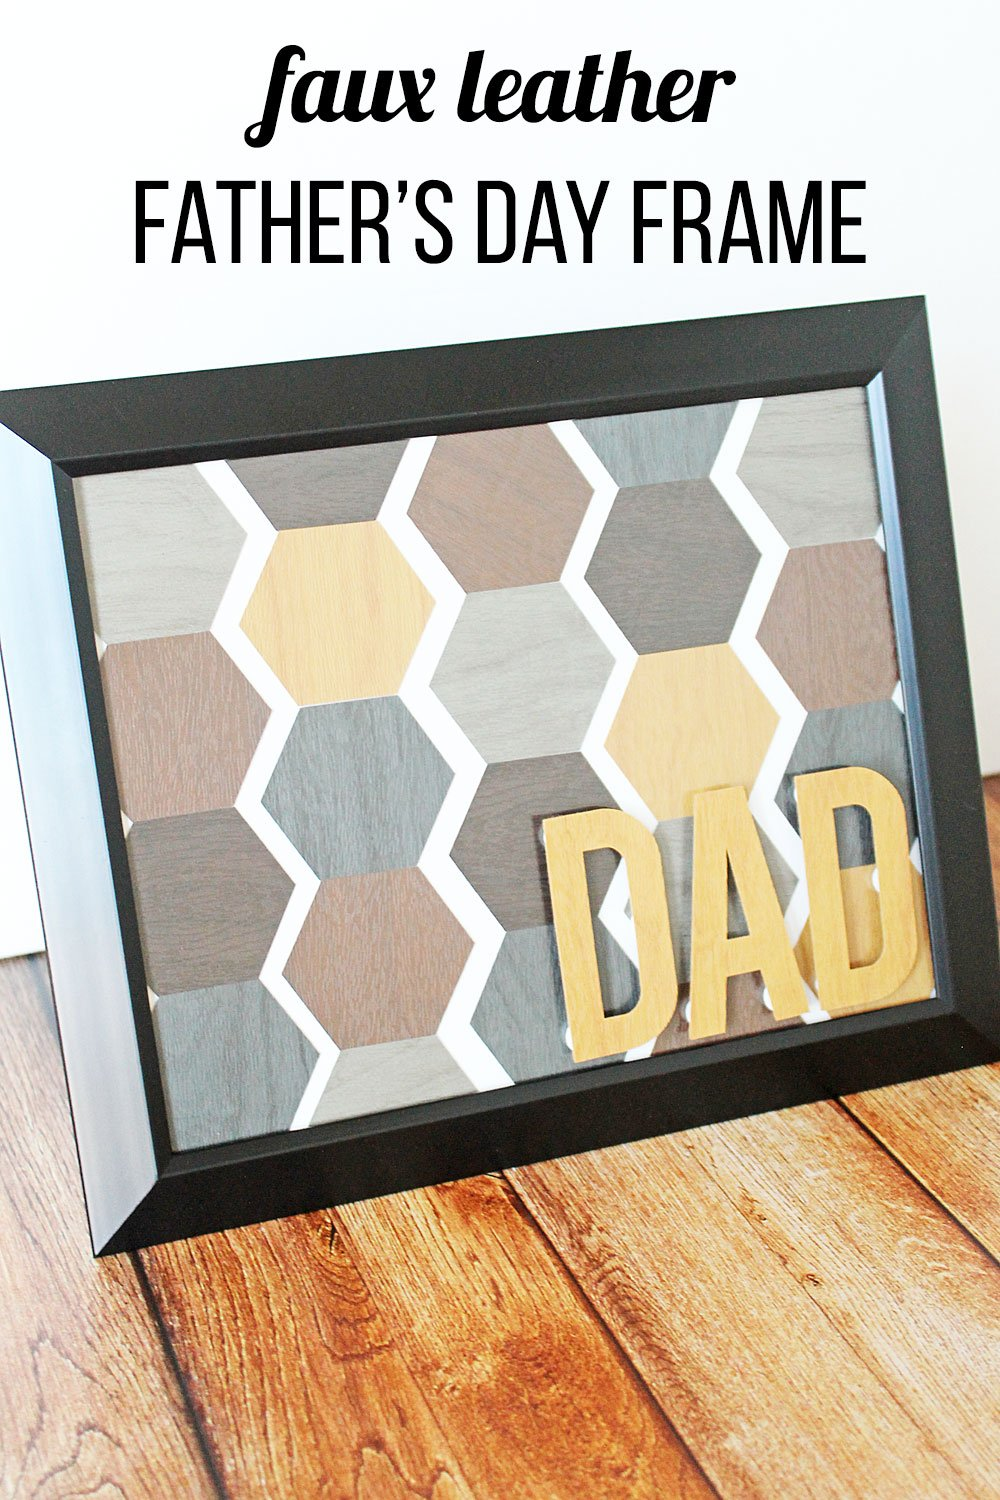 Faux leather Father's Day frame made with Cricut Explore Air 2